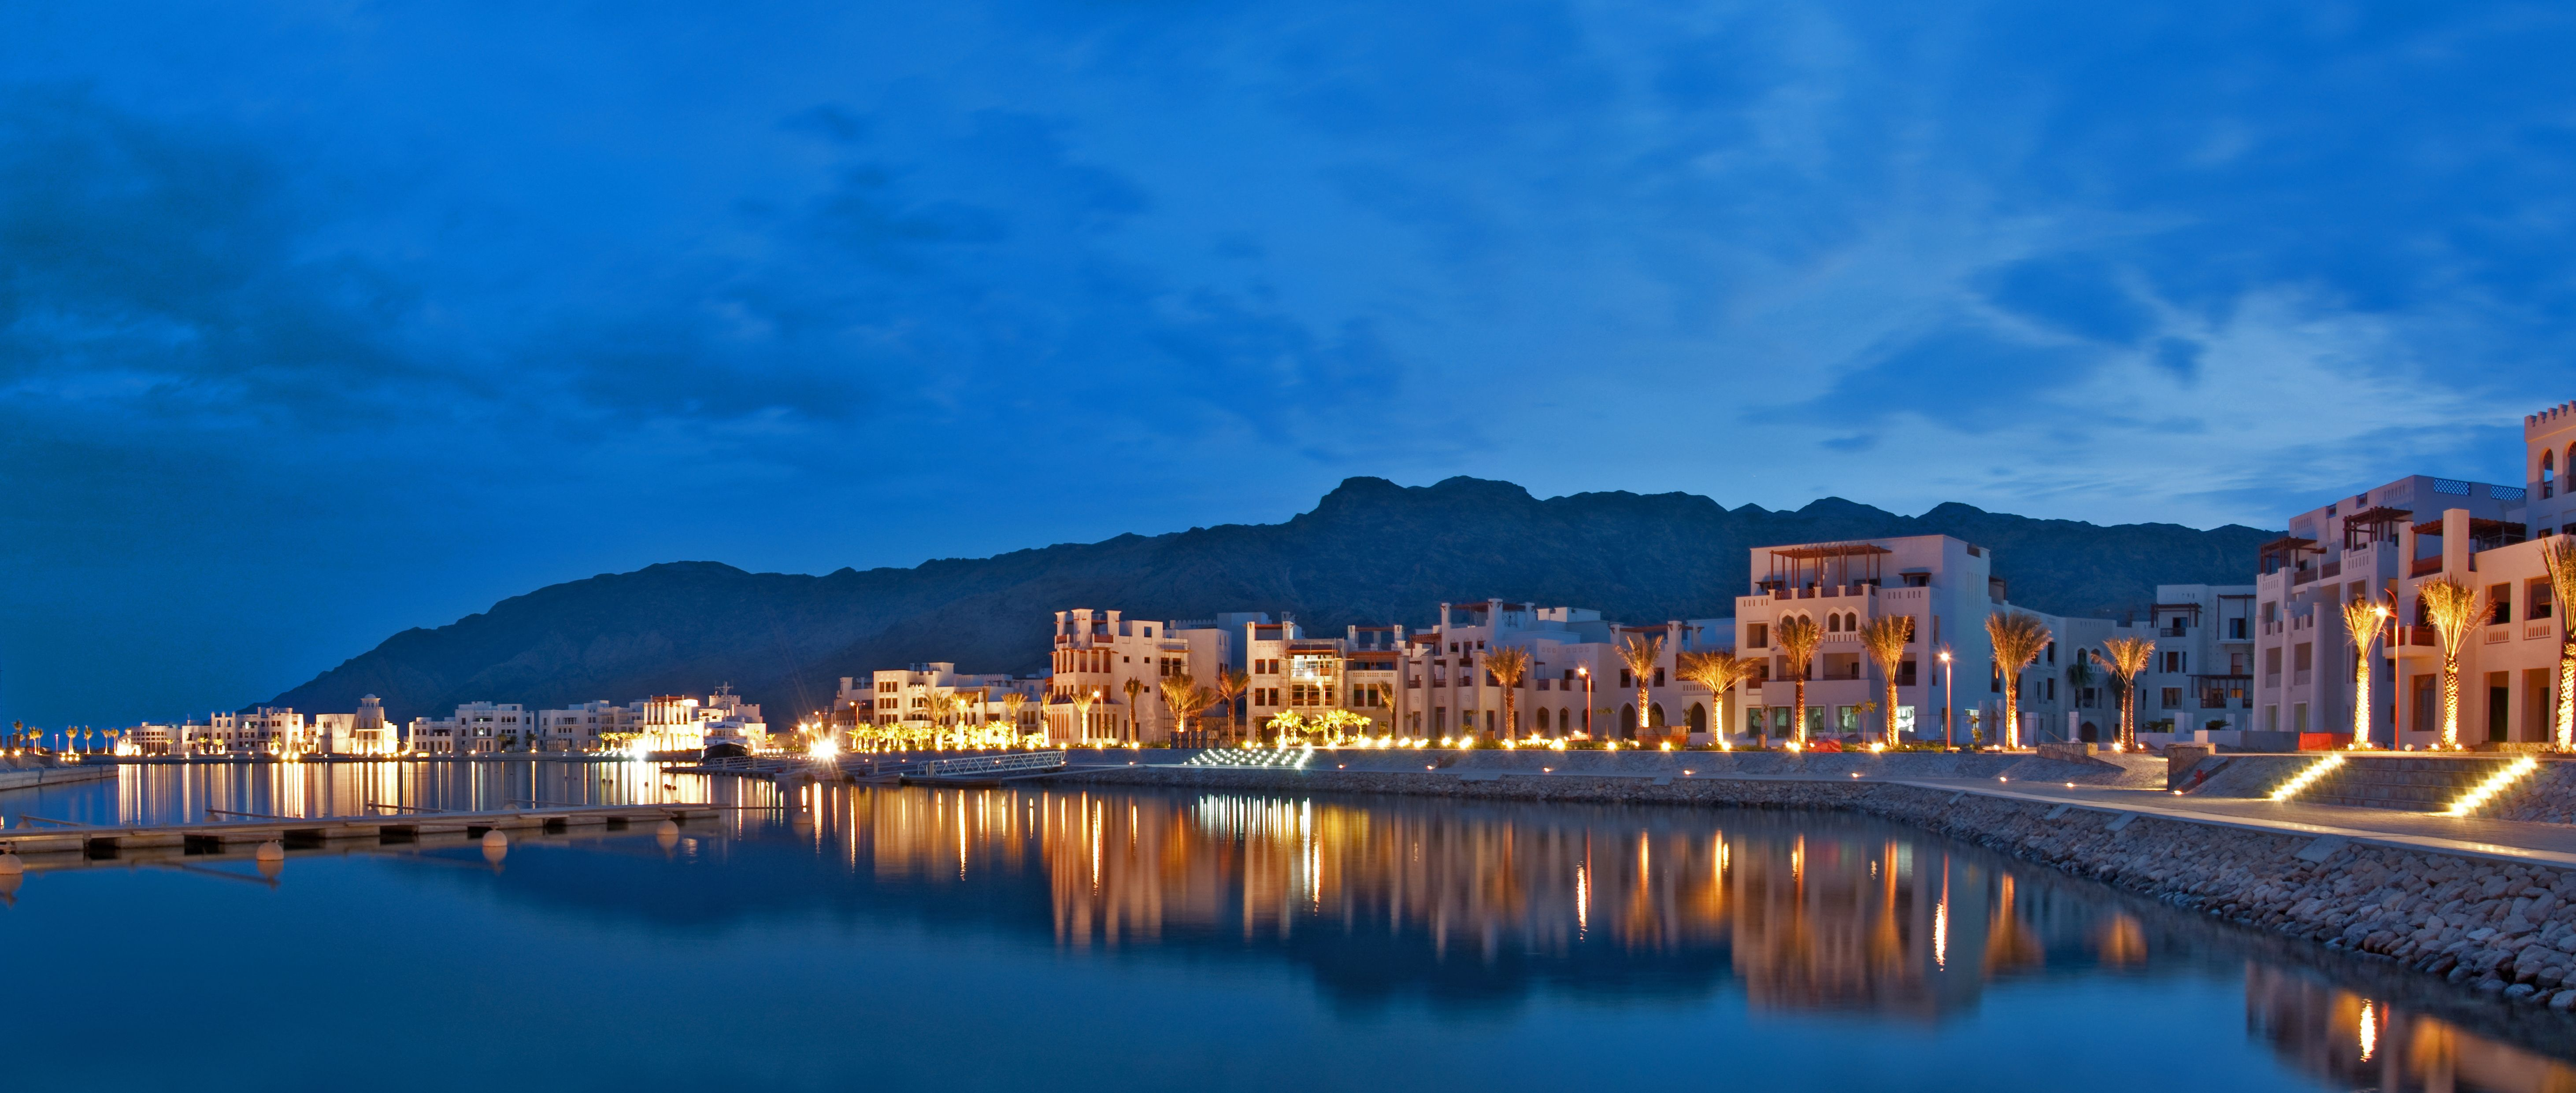 Beach Boutique Hotel Within Jebel Sifah Resort In Oman Oman Hotels Beach Hotels Oman Beach